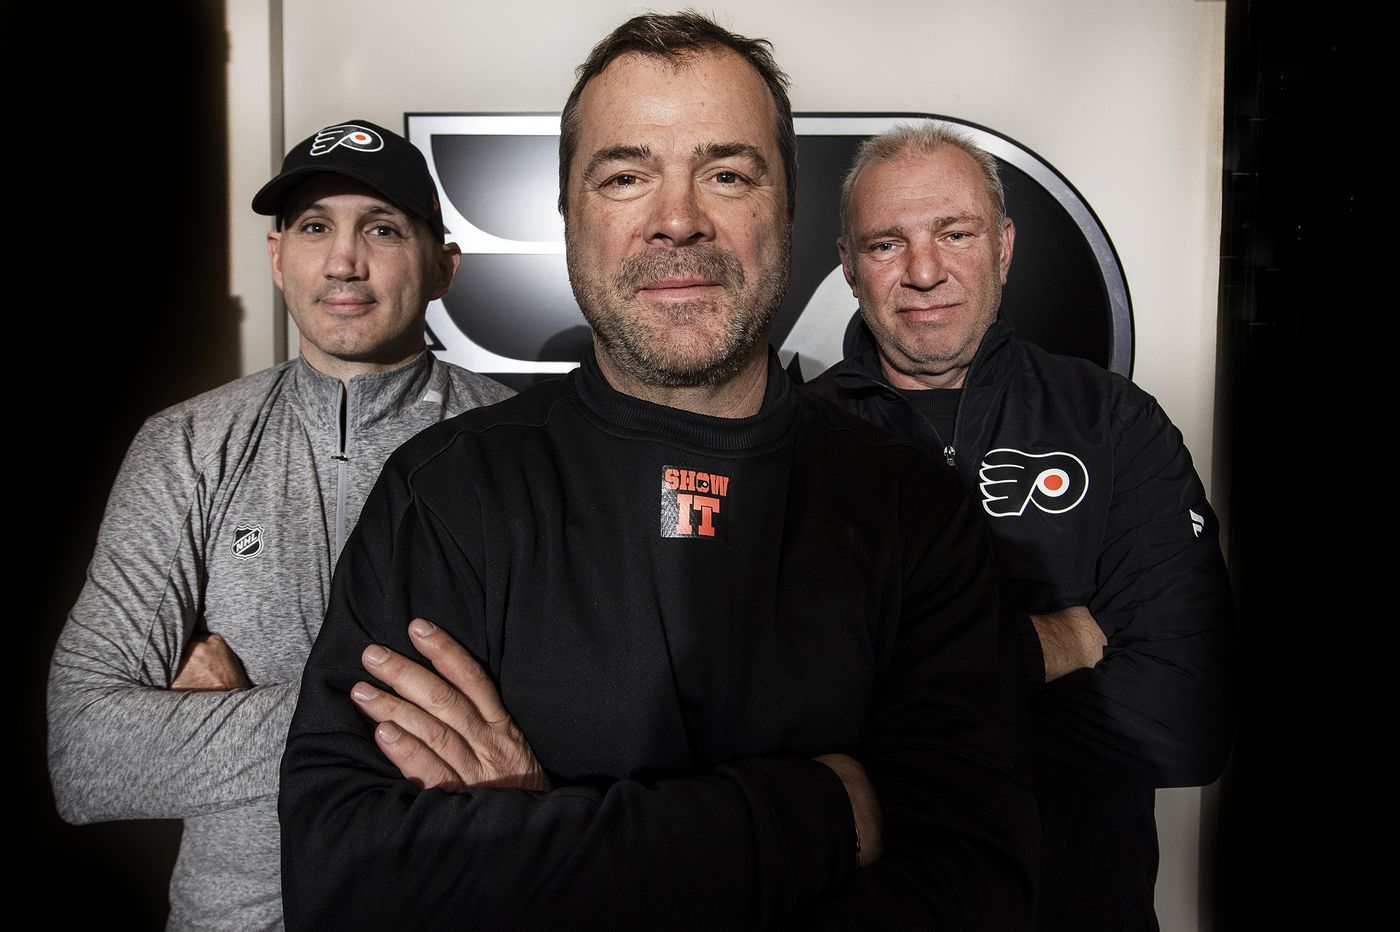 The Flyers' French Connection: 'We're hockey people first'